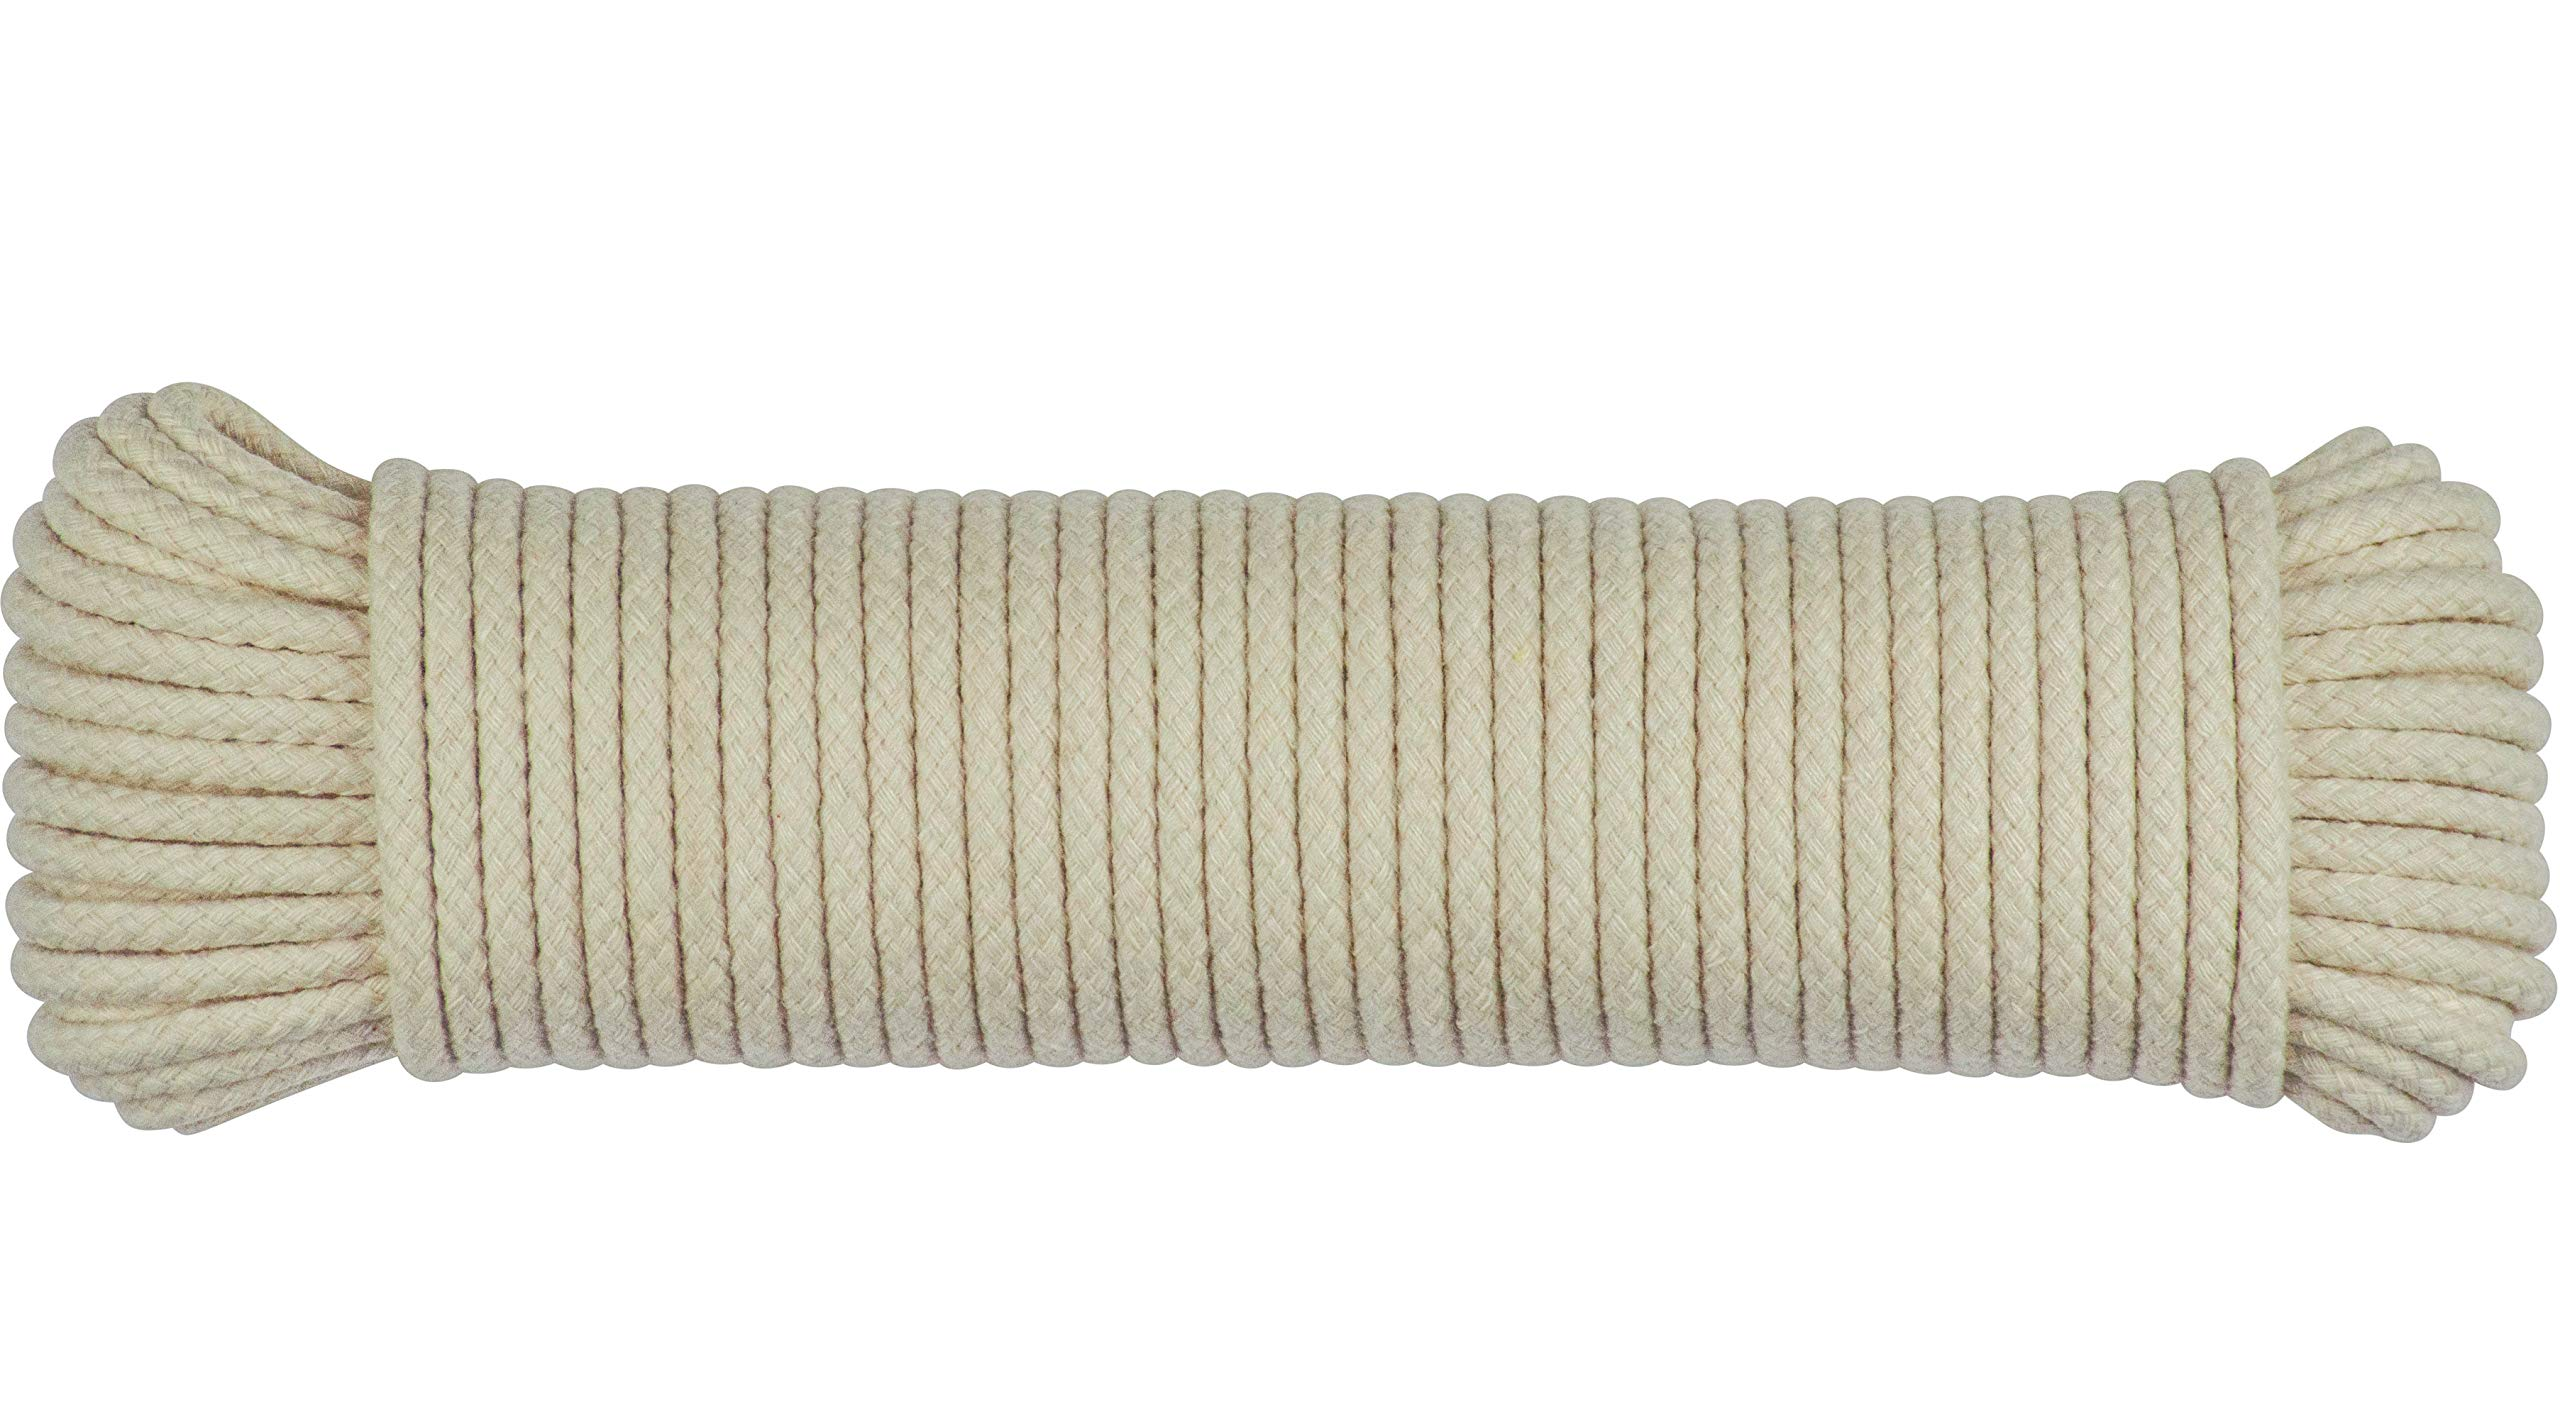 Halters SteadMax 50ft Natural Cotton 3//16 Inch Rope for Sports /& Outdoors Ideal for Tents Hammocks Awnings Harnesses 1 Pack Heavy Duty General Purpose Rope Utility Cord